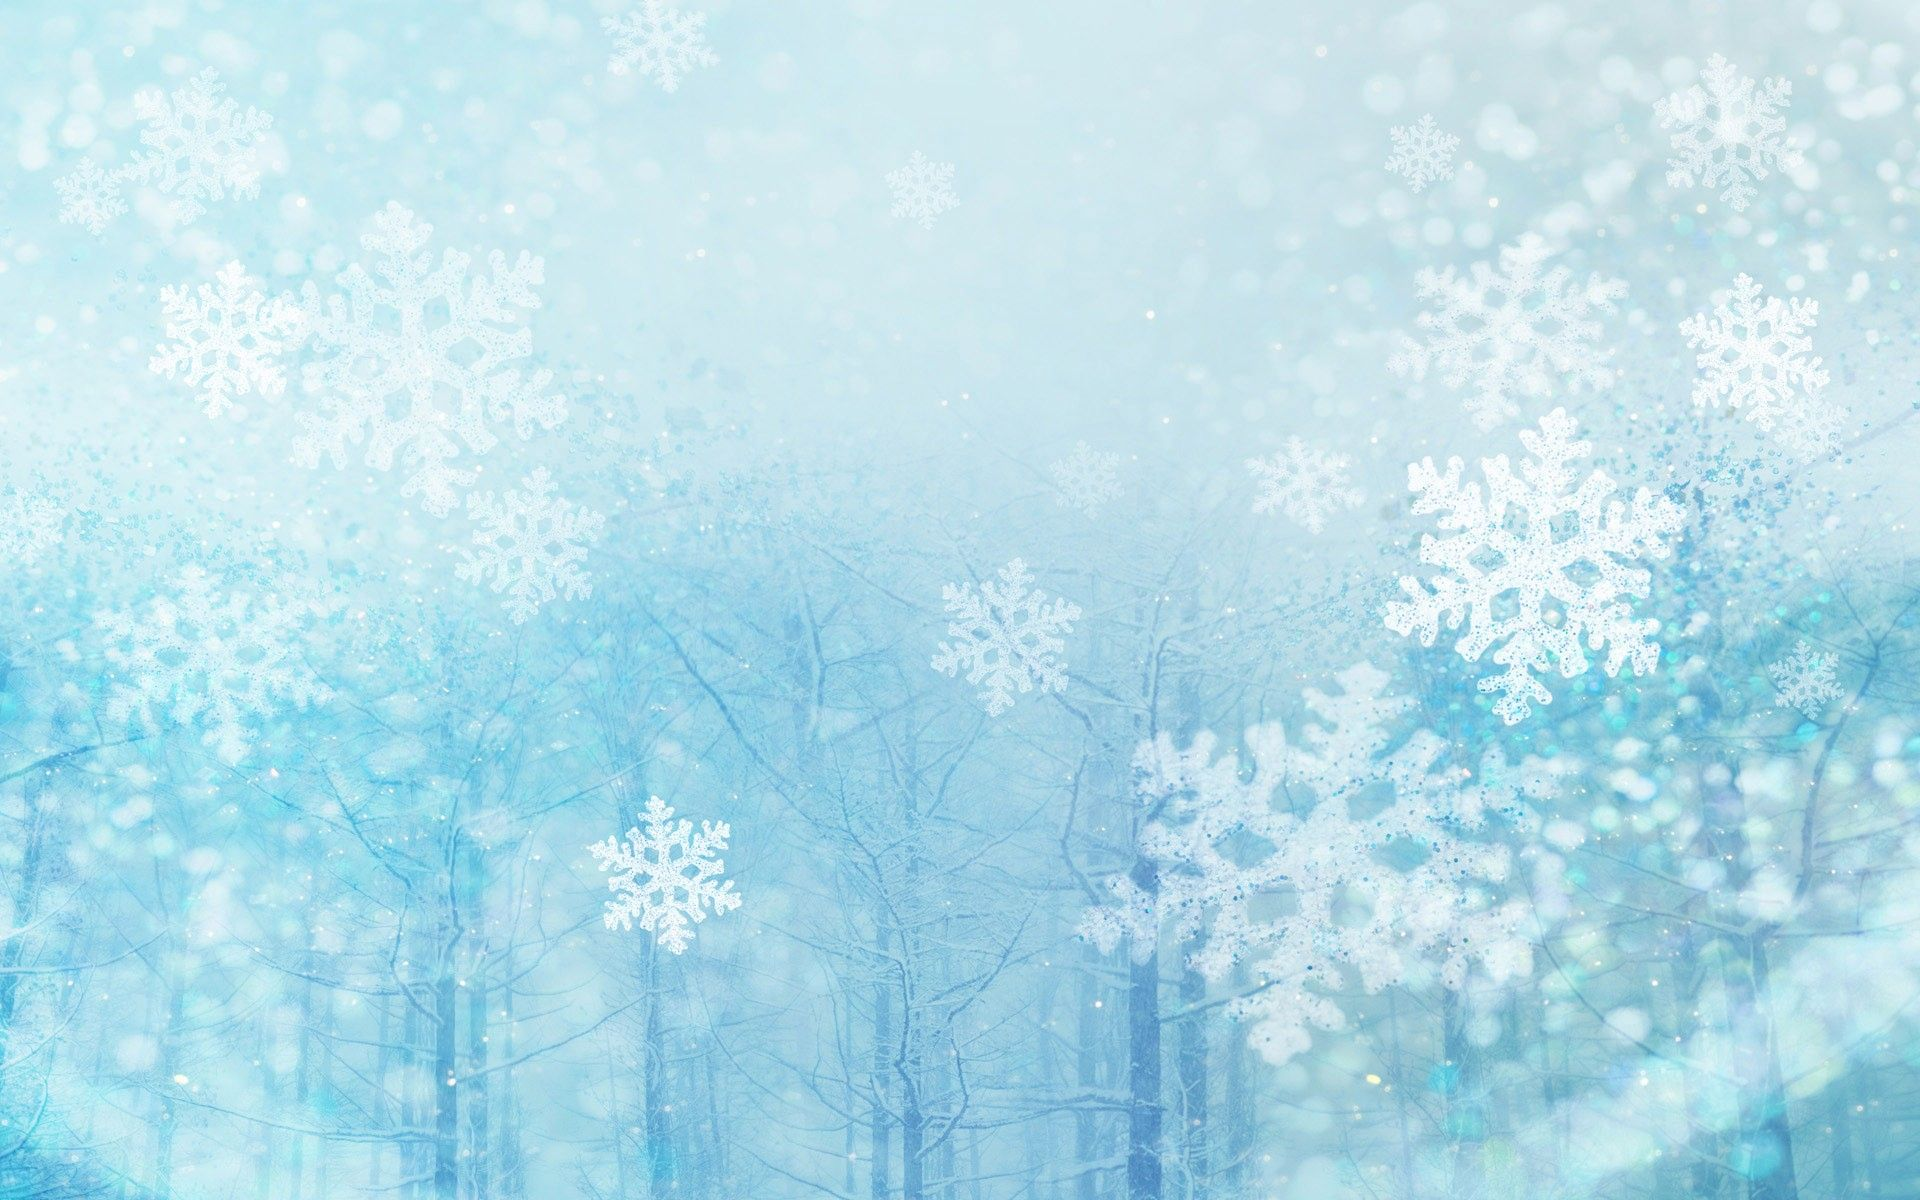 Winter Snow Wallpapers PixelsTalk Snow Desktop Wallpaper 1920x1200